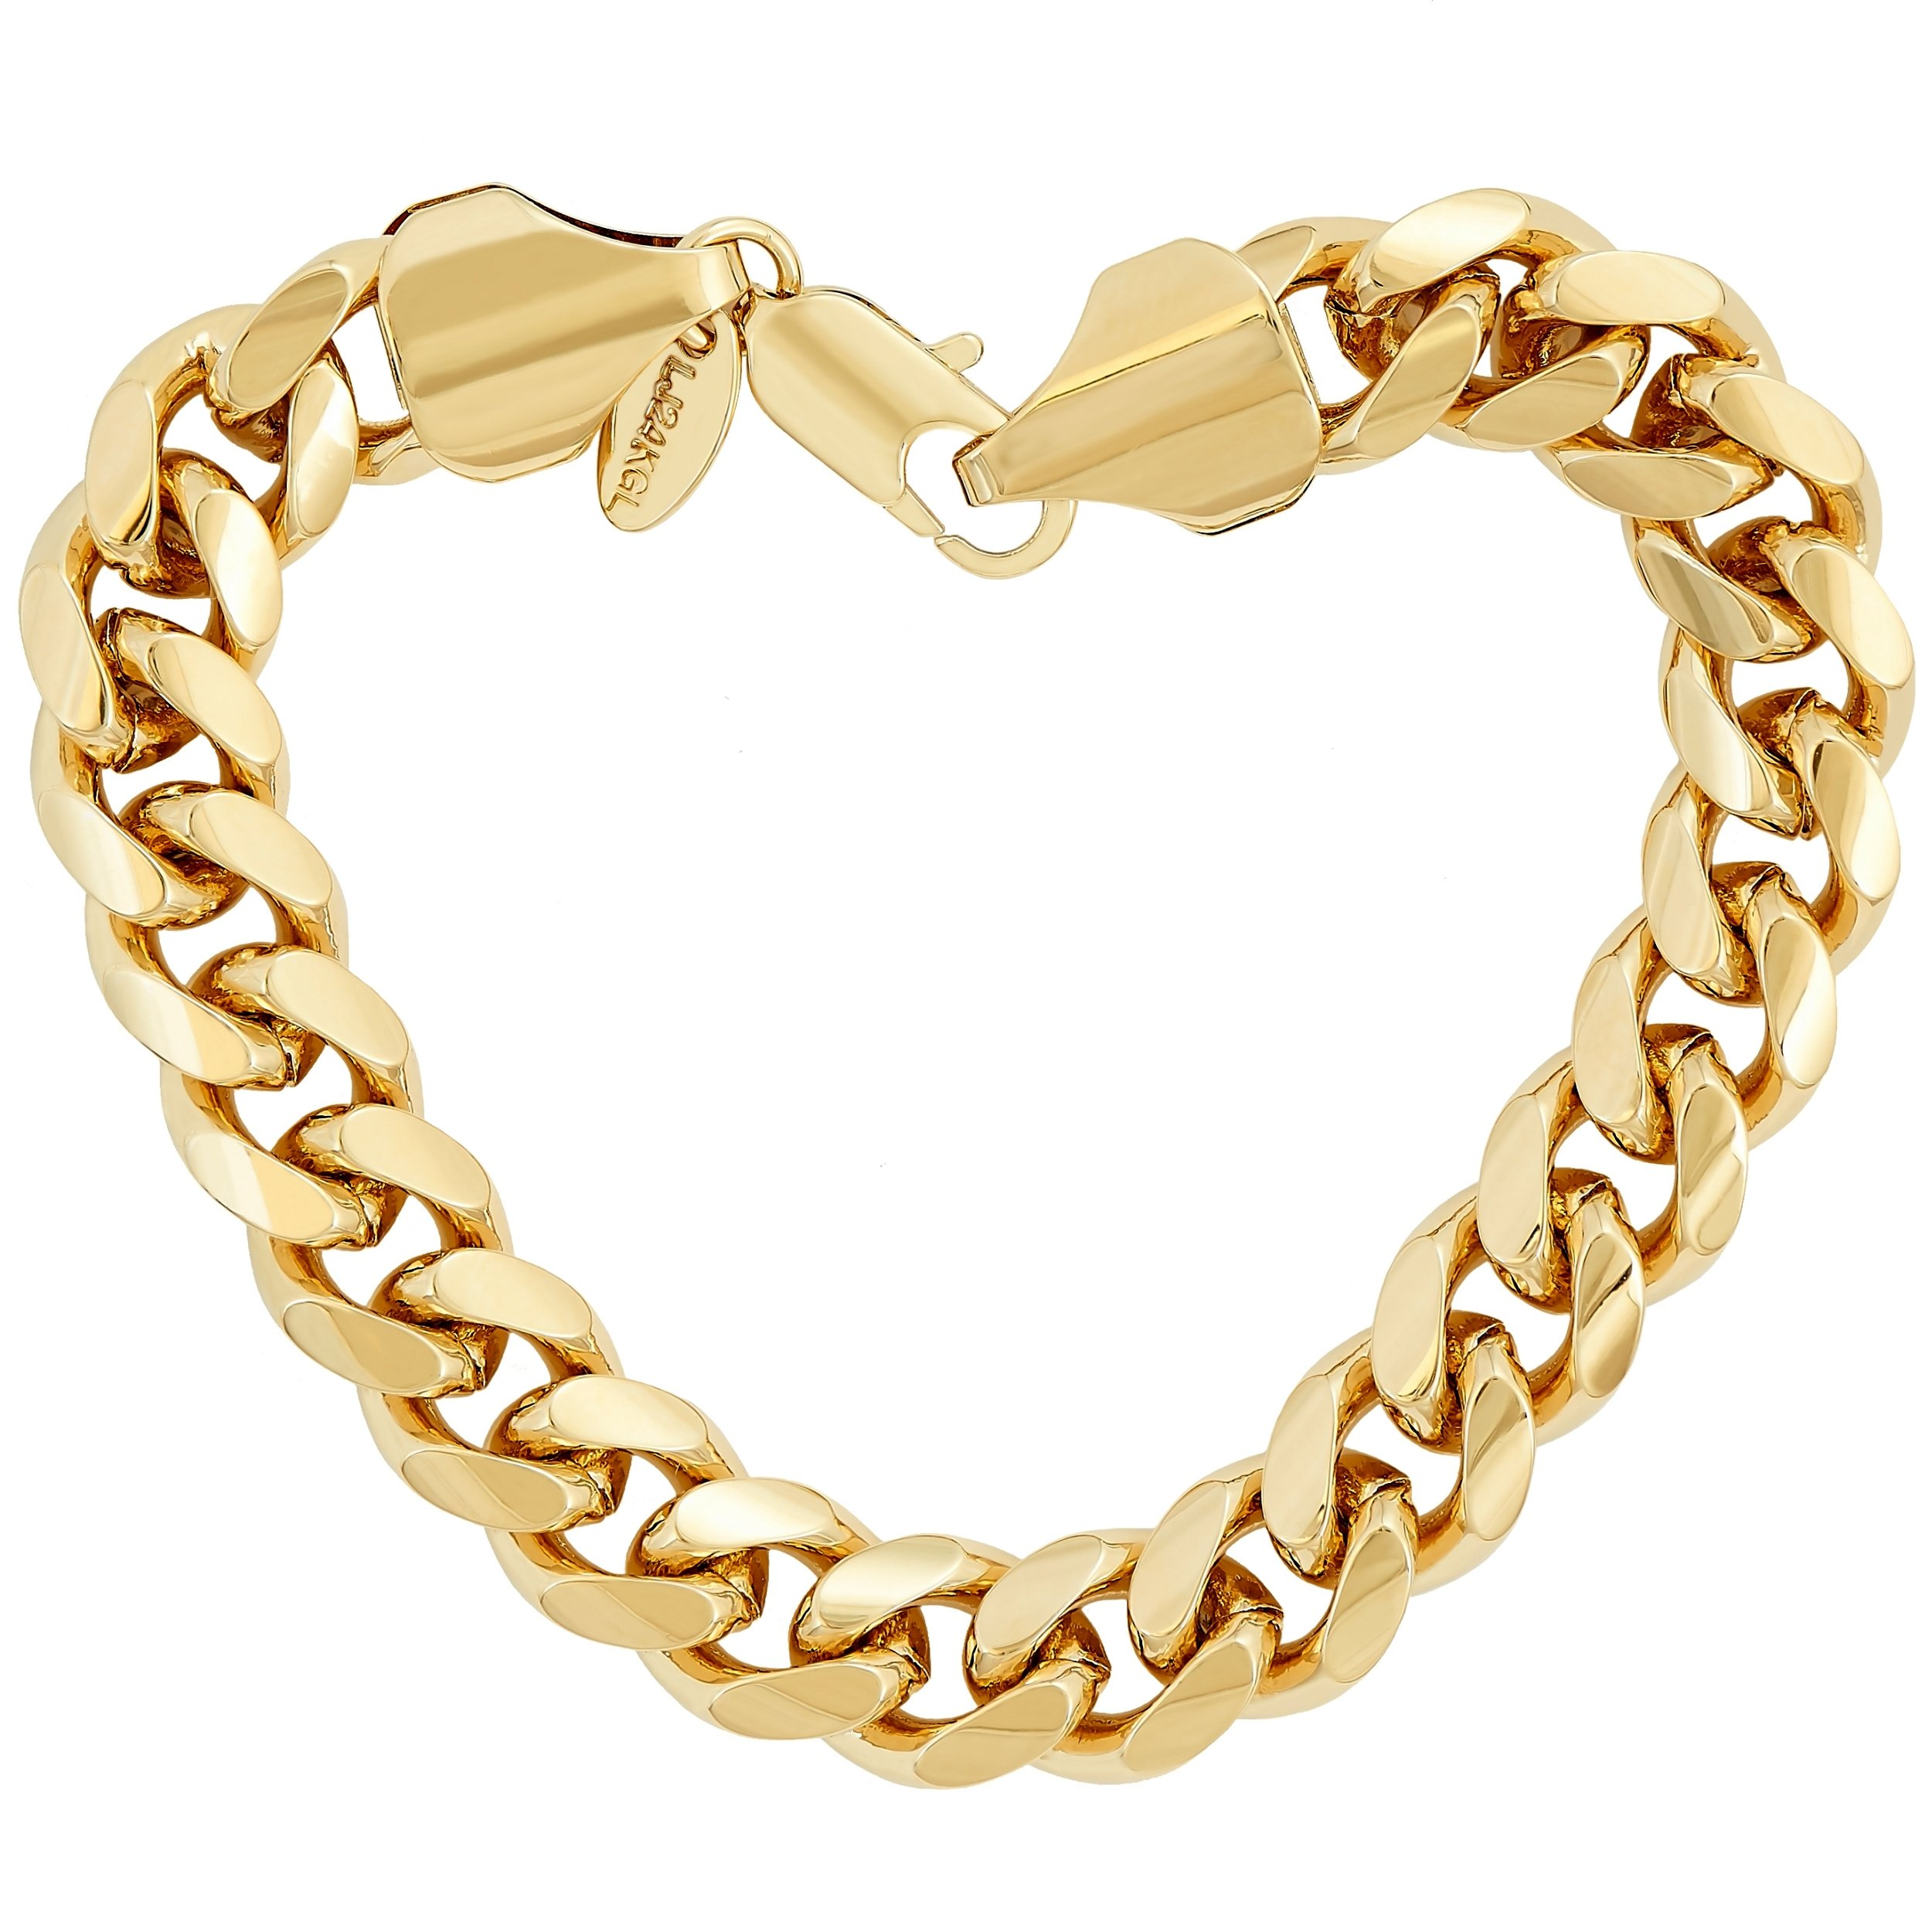 Lifetime Jewelry Cuban Link Bracelet 11MM, Round, 24K Gold Overlay Premium Fashion Jewelry, Guaranteed for Life, 9 Inches by Lifetime Jewelry